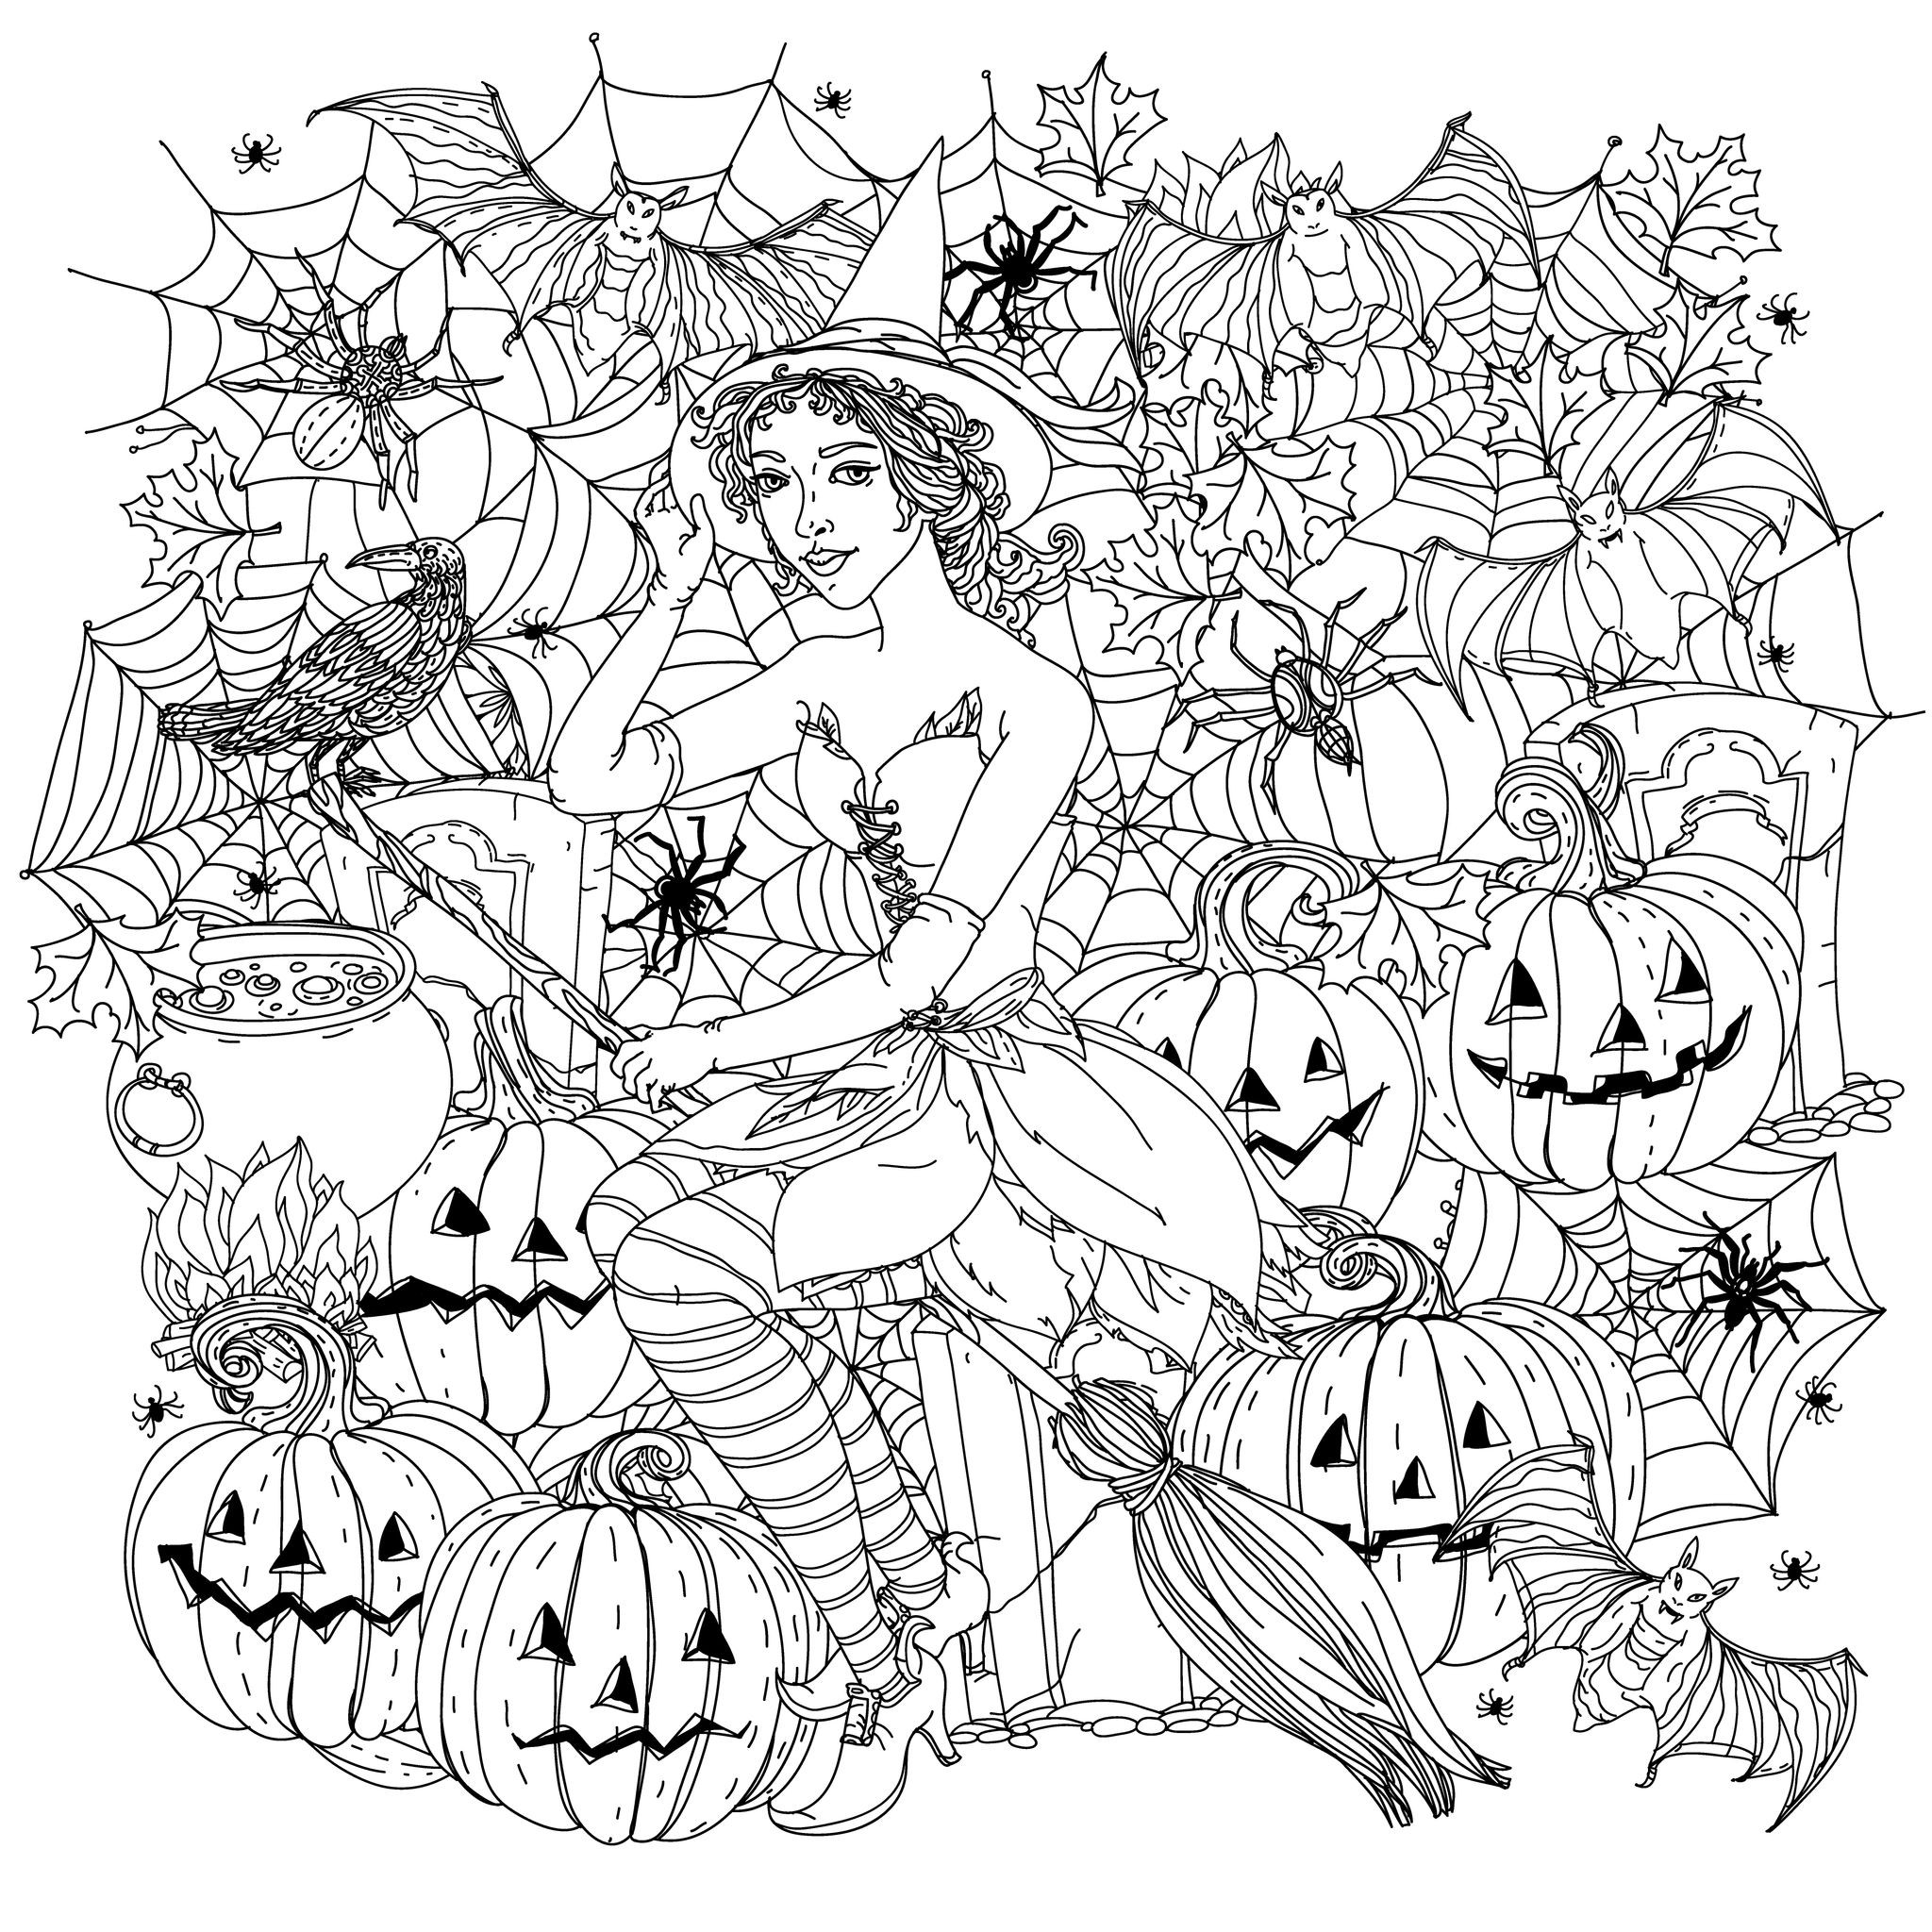 Free Printable Coloring Sheets For Adults Halloween  Halloween witch with pumpkins Halloween Adult Coloring Pages